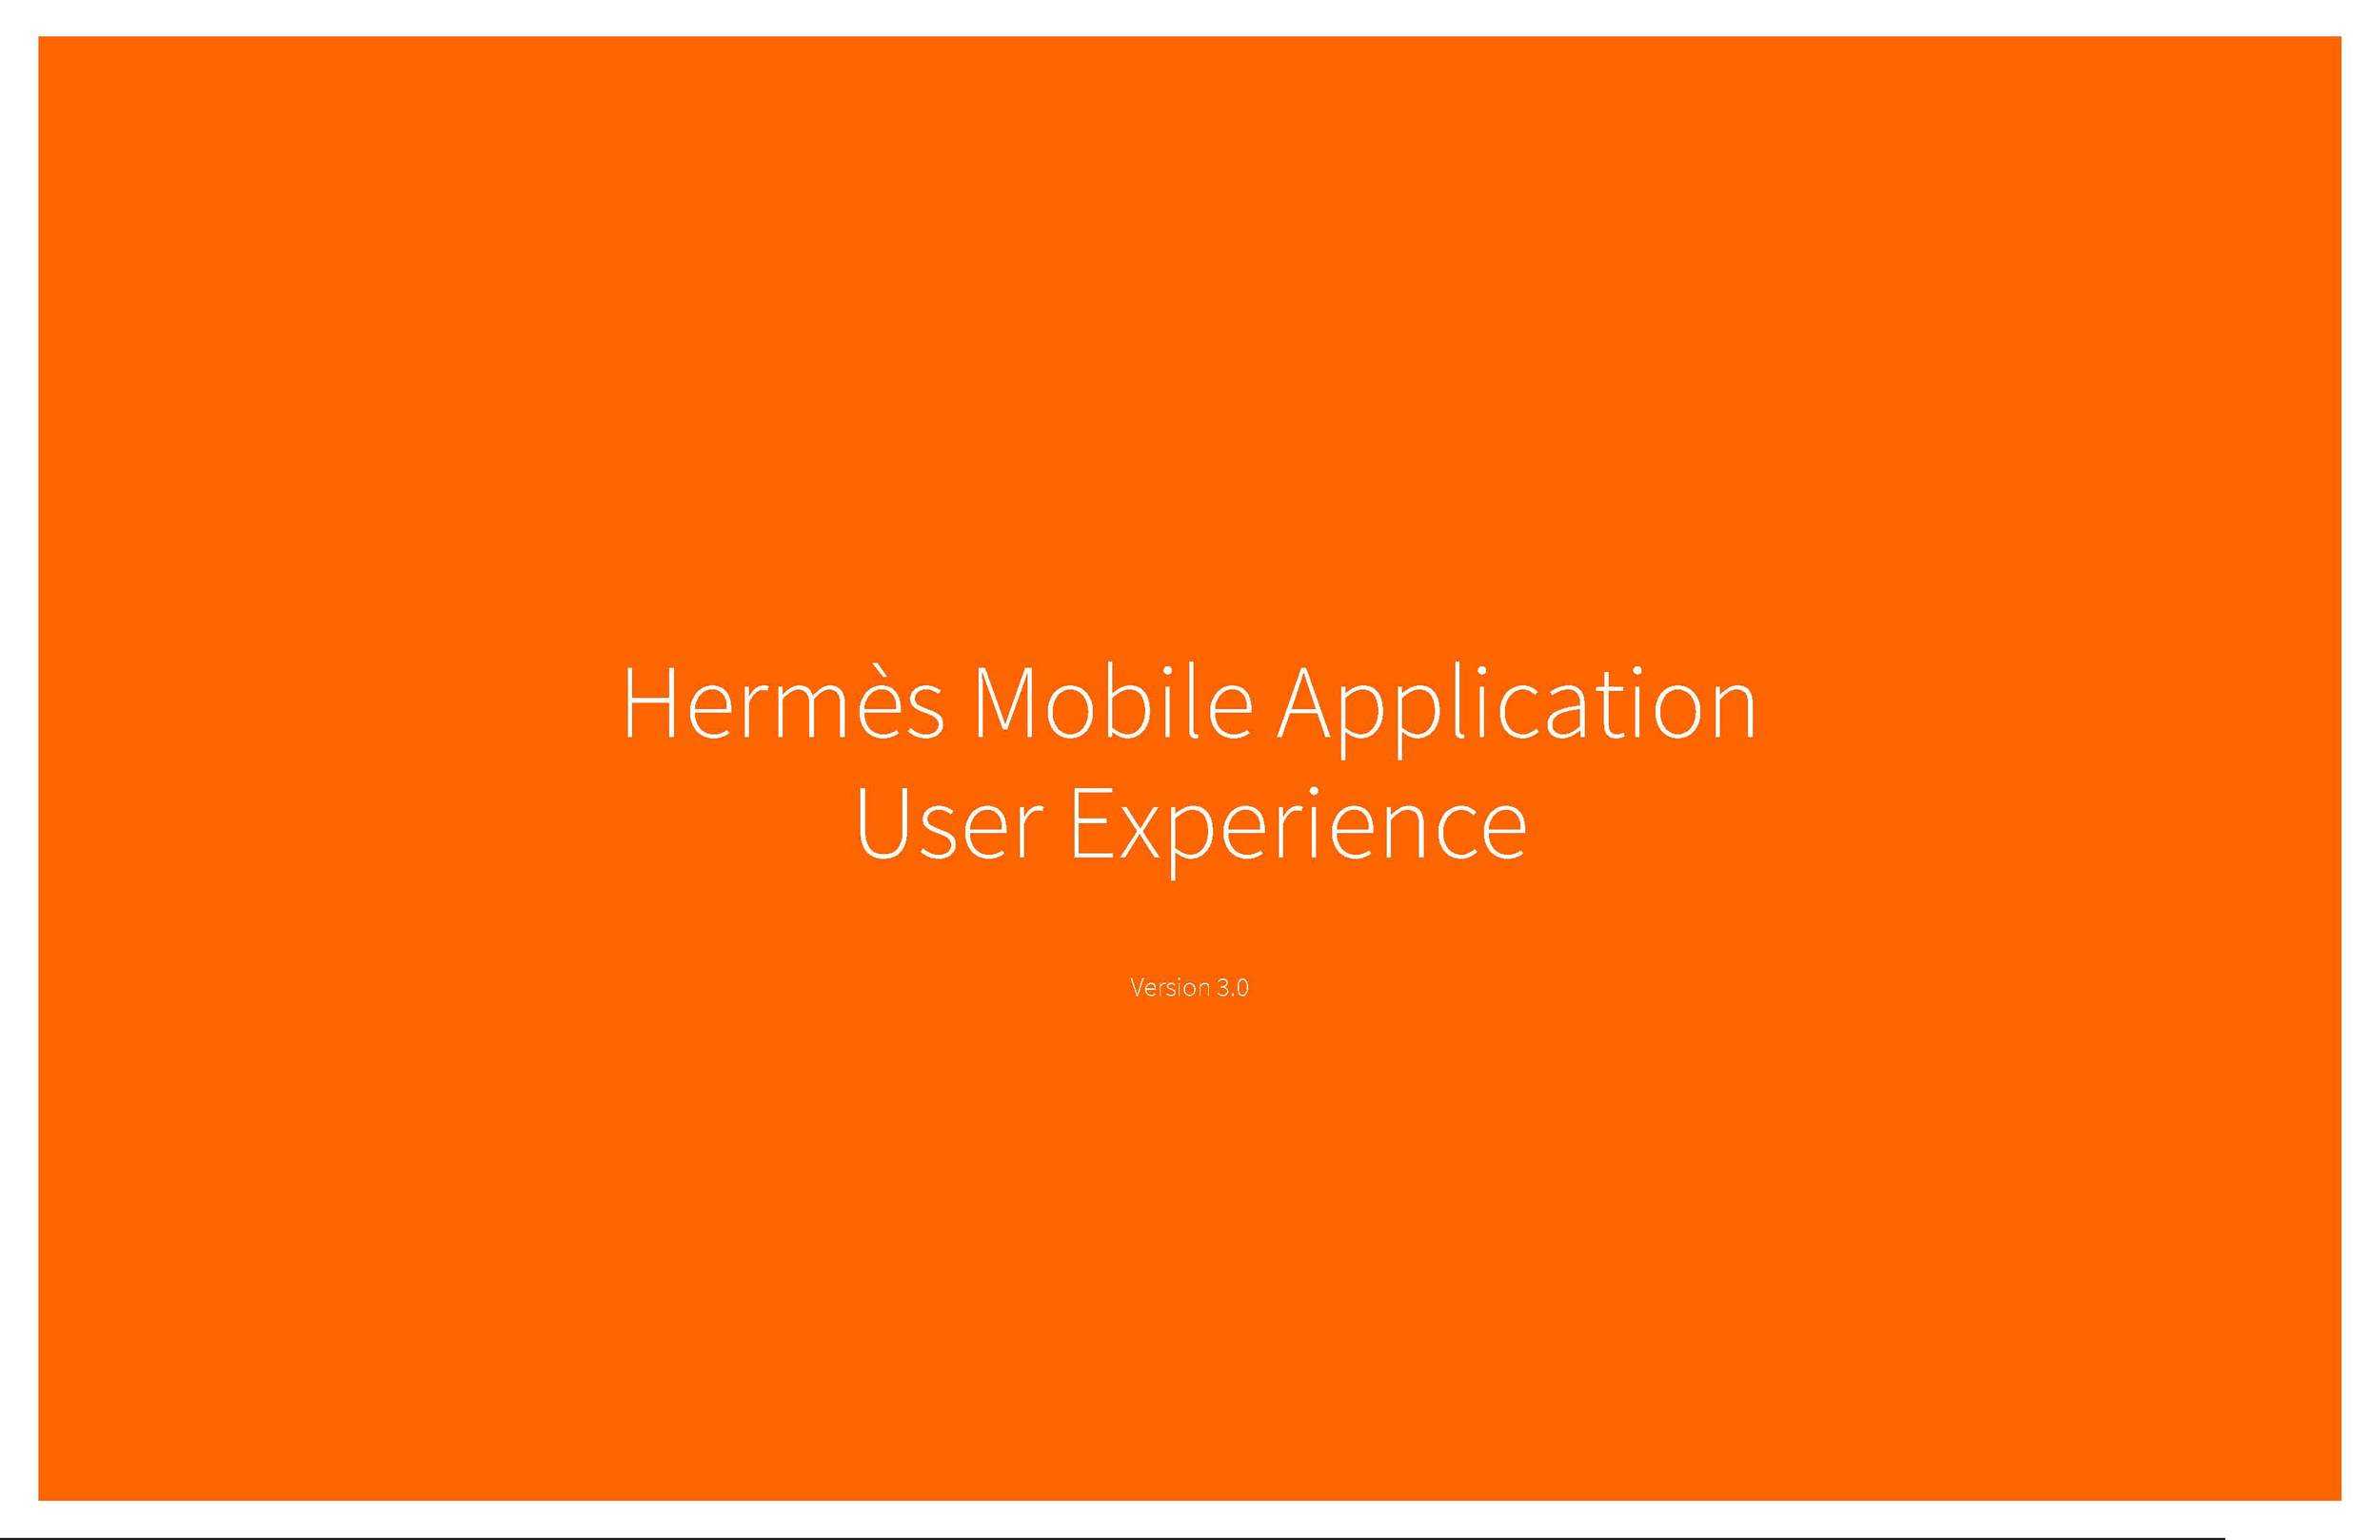 hermes-caraousel-wireframes_Page_01.jpg